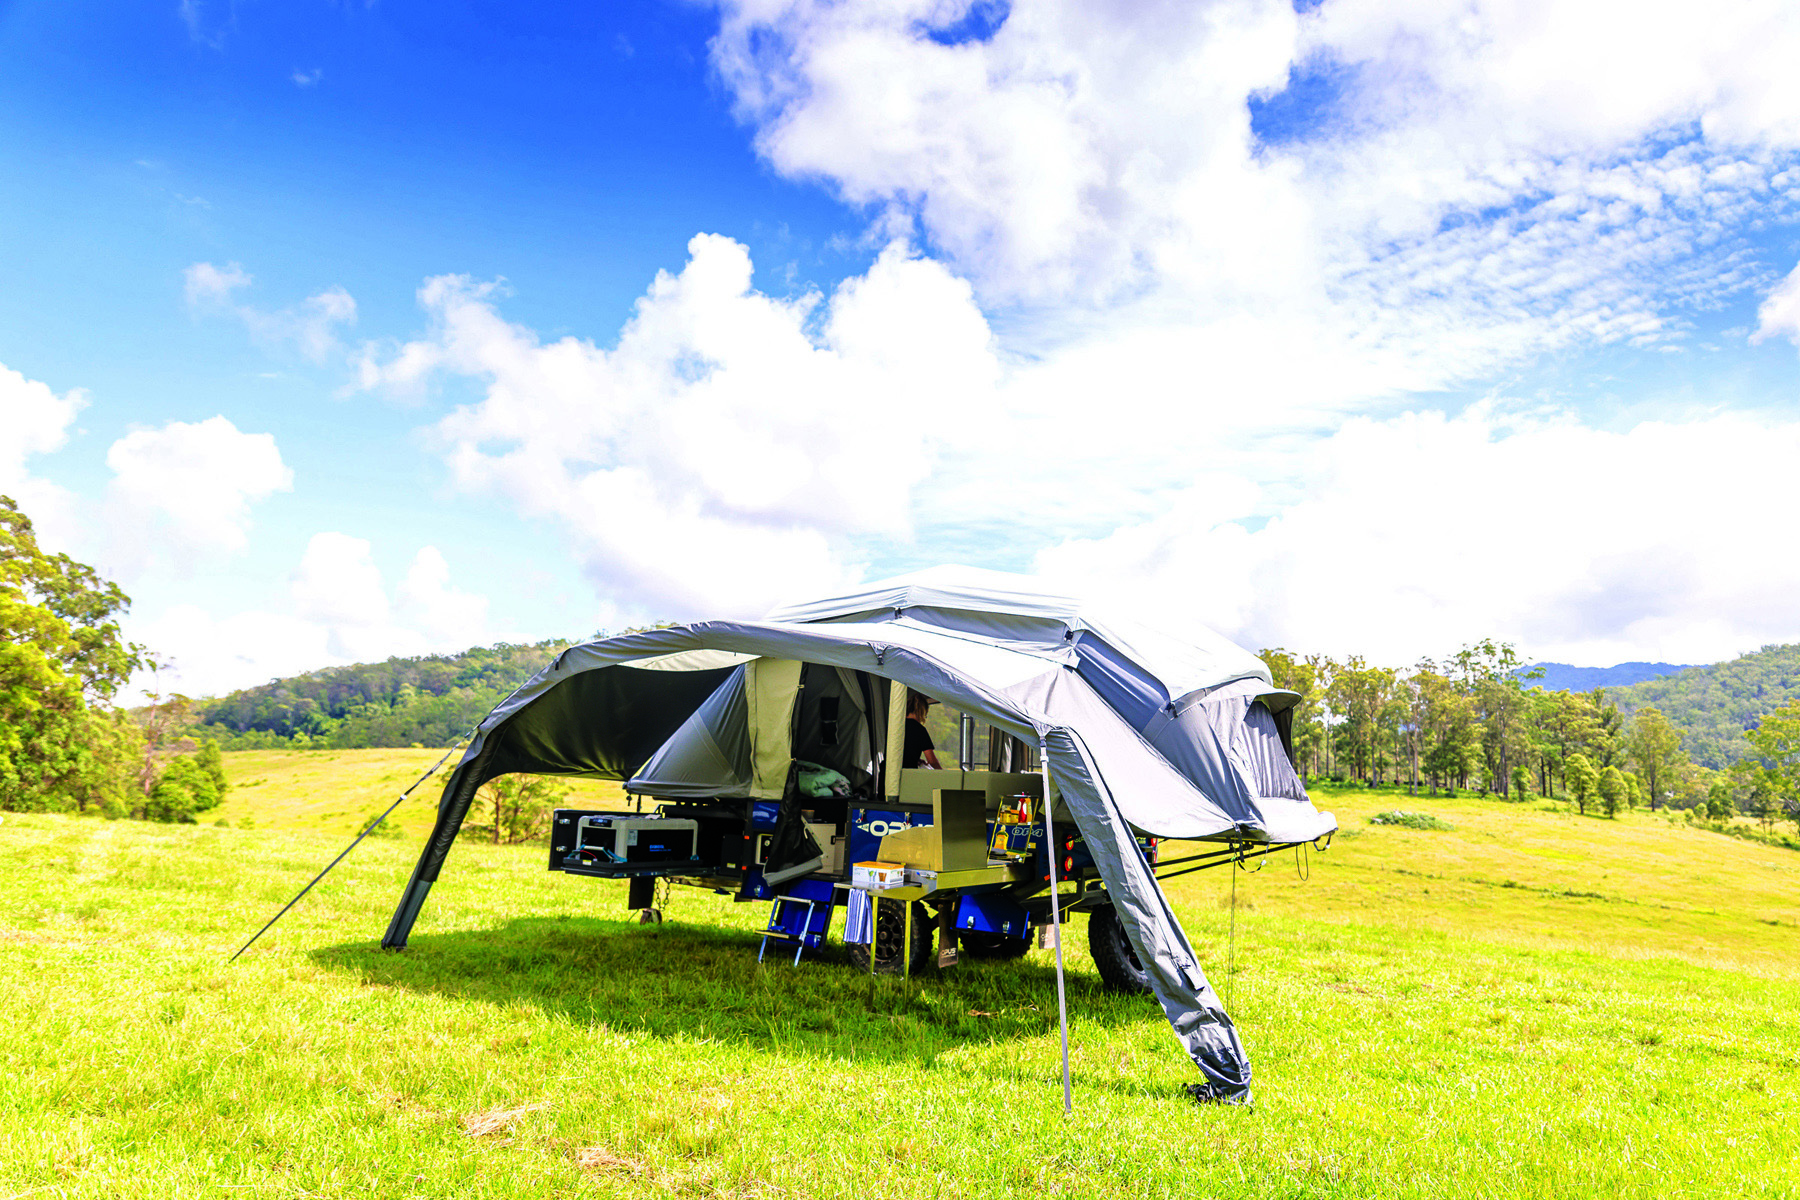 The Opus OP4 fully set up with its awnings